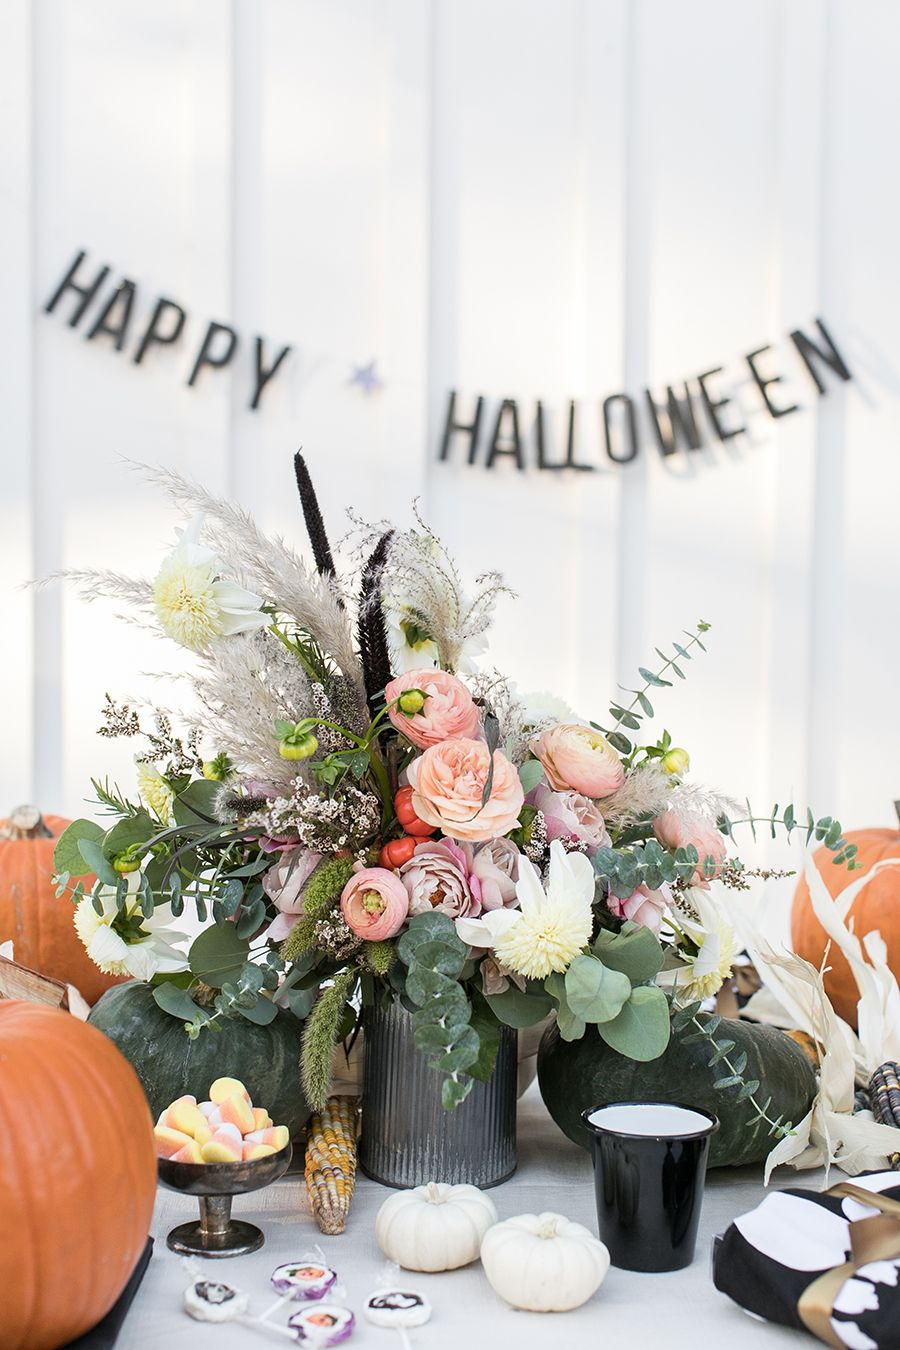 How to throw a pumpkin carving party charming parties pinterest